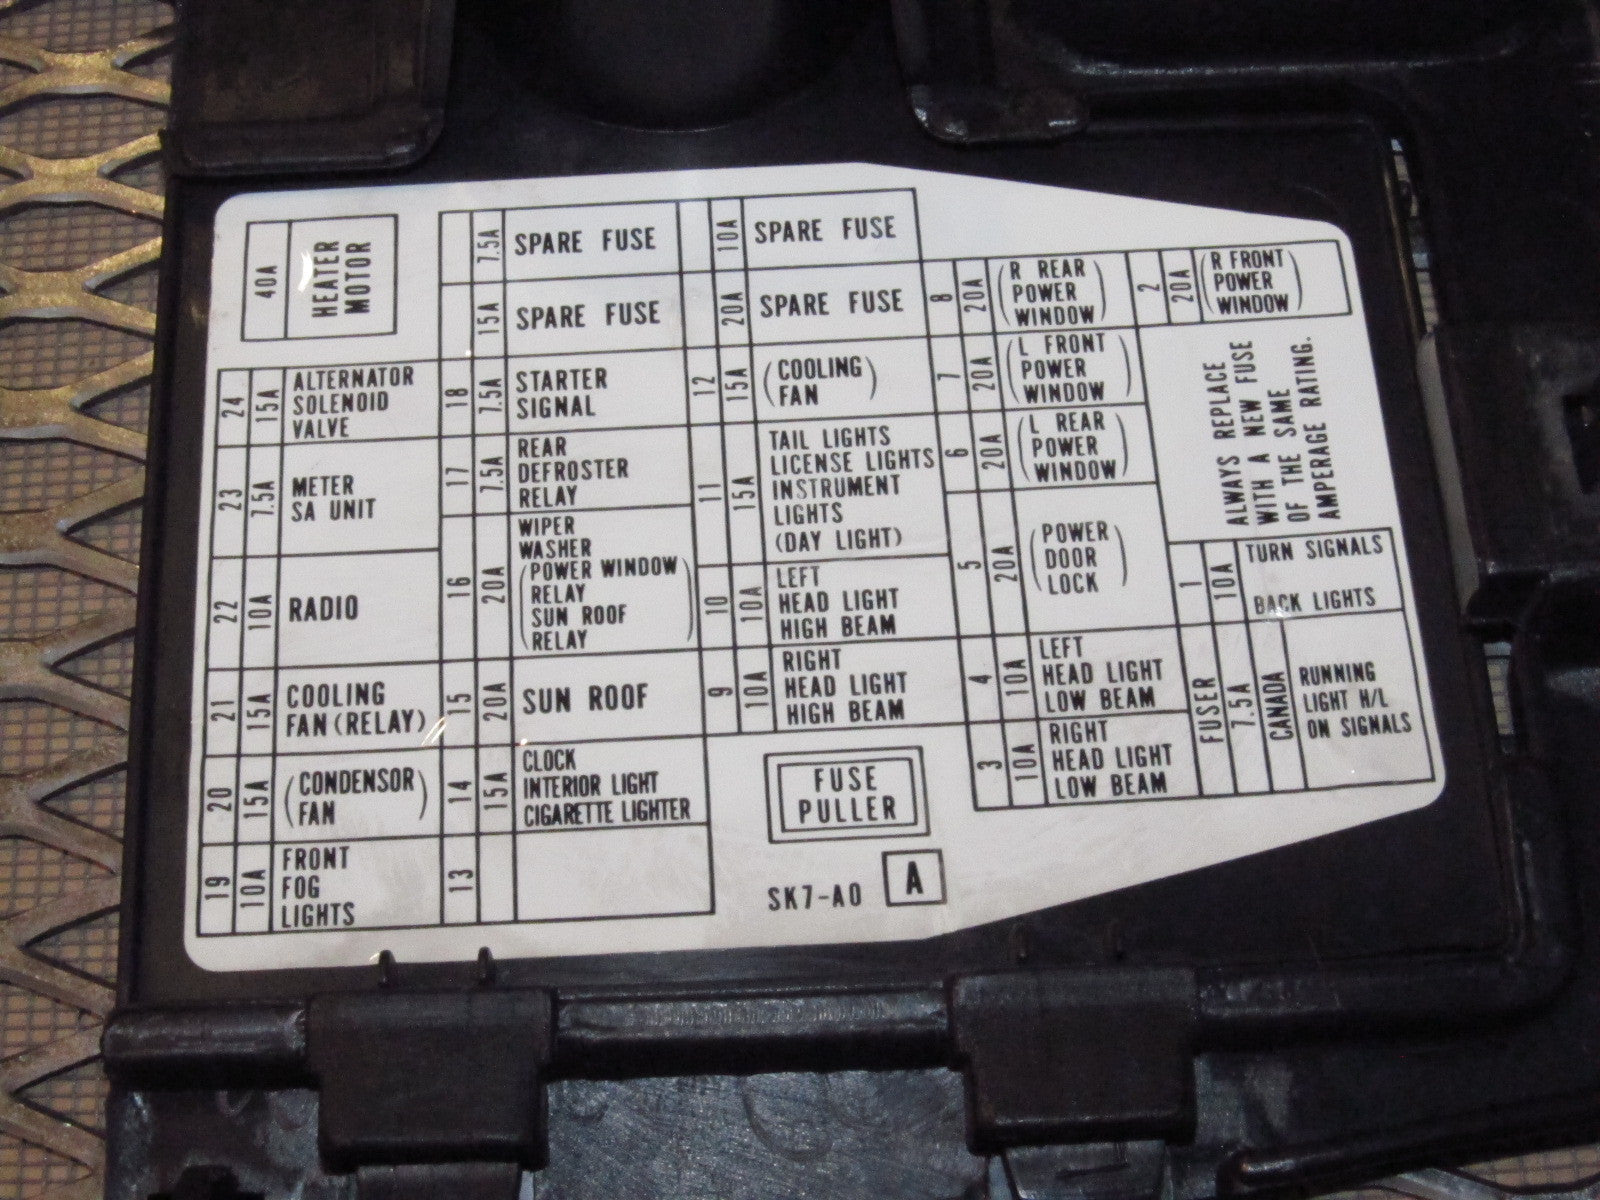 IMG_2074_268cd26f 9272 410d bb02 d2549831a1a8?v=1474068497 90 91 92 93 acura integra oem kick panel cover set autopartone com integra fuse box diagram at gsmportal.co